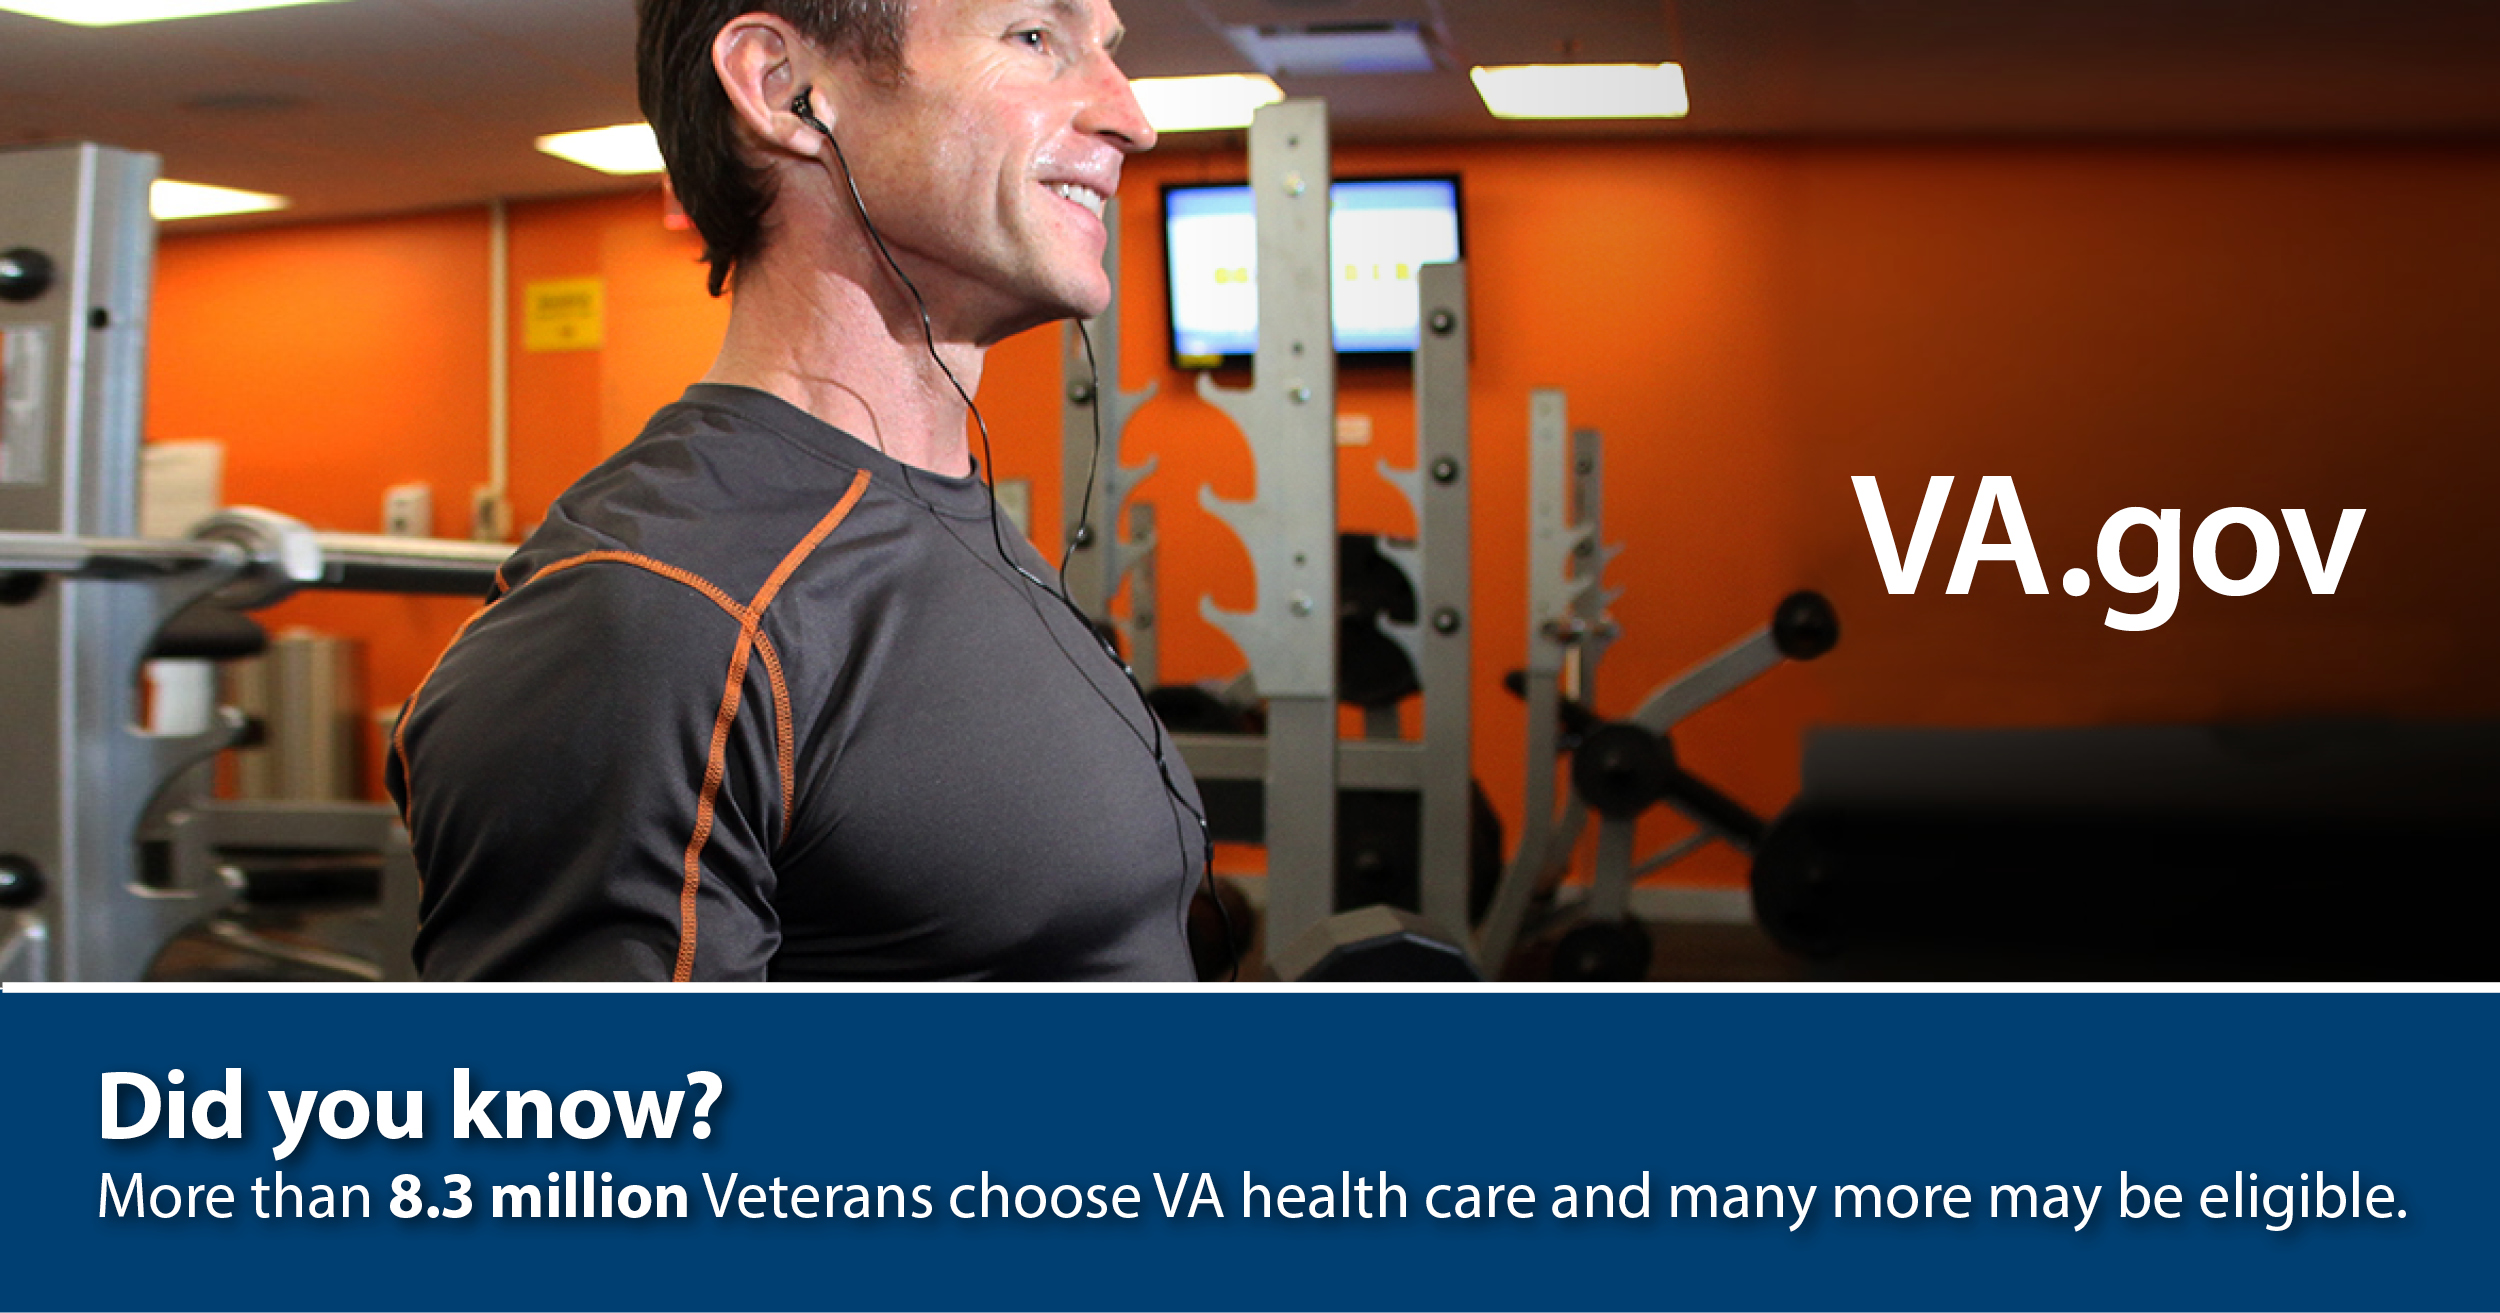 Did you know? More than 8.3 million Veterans choose VA health care and many more may be eligible.